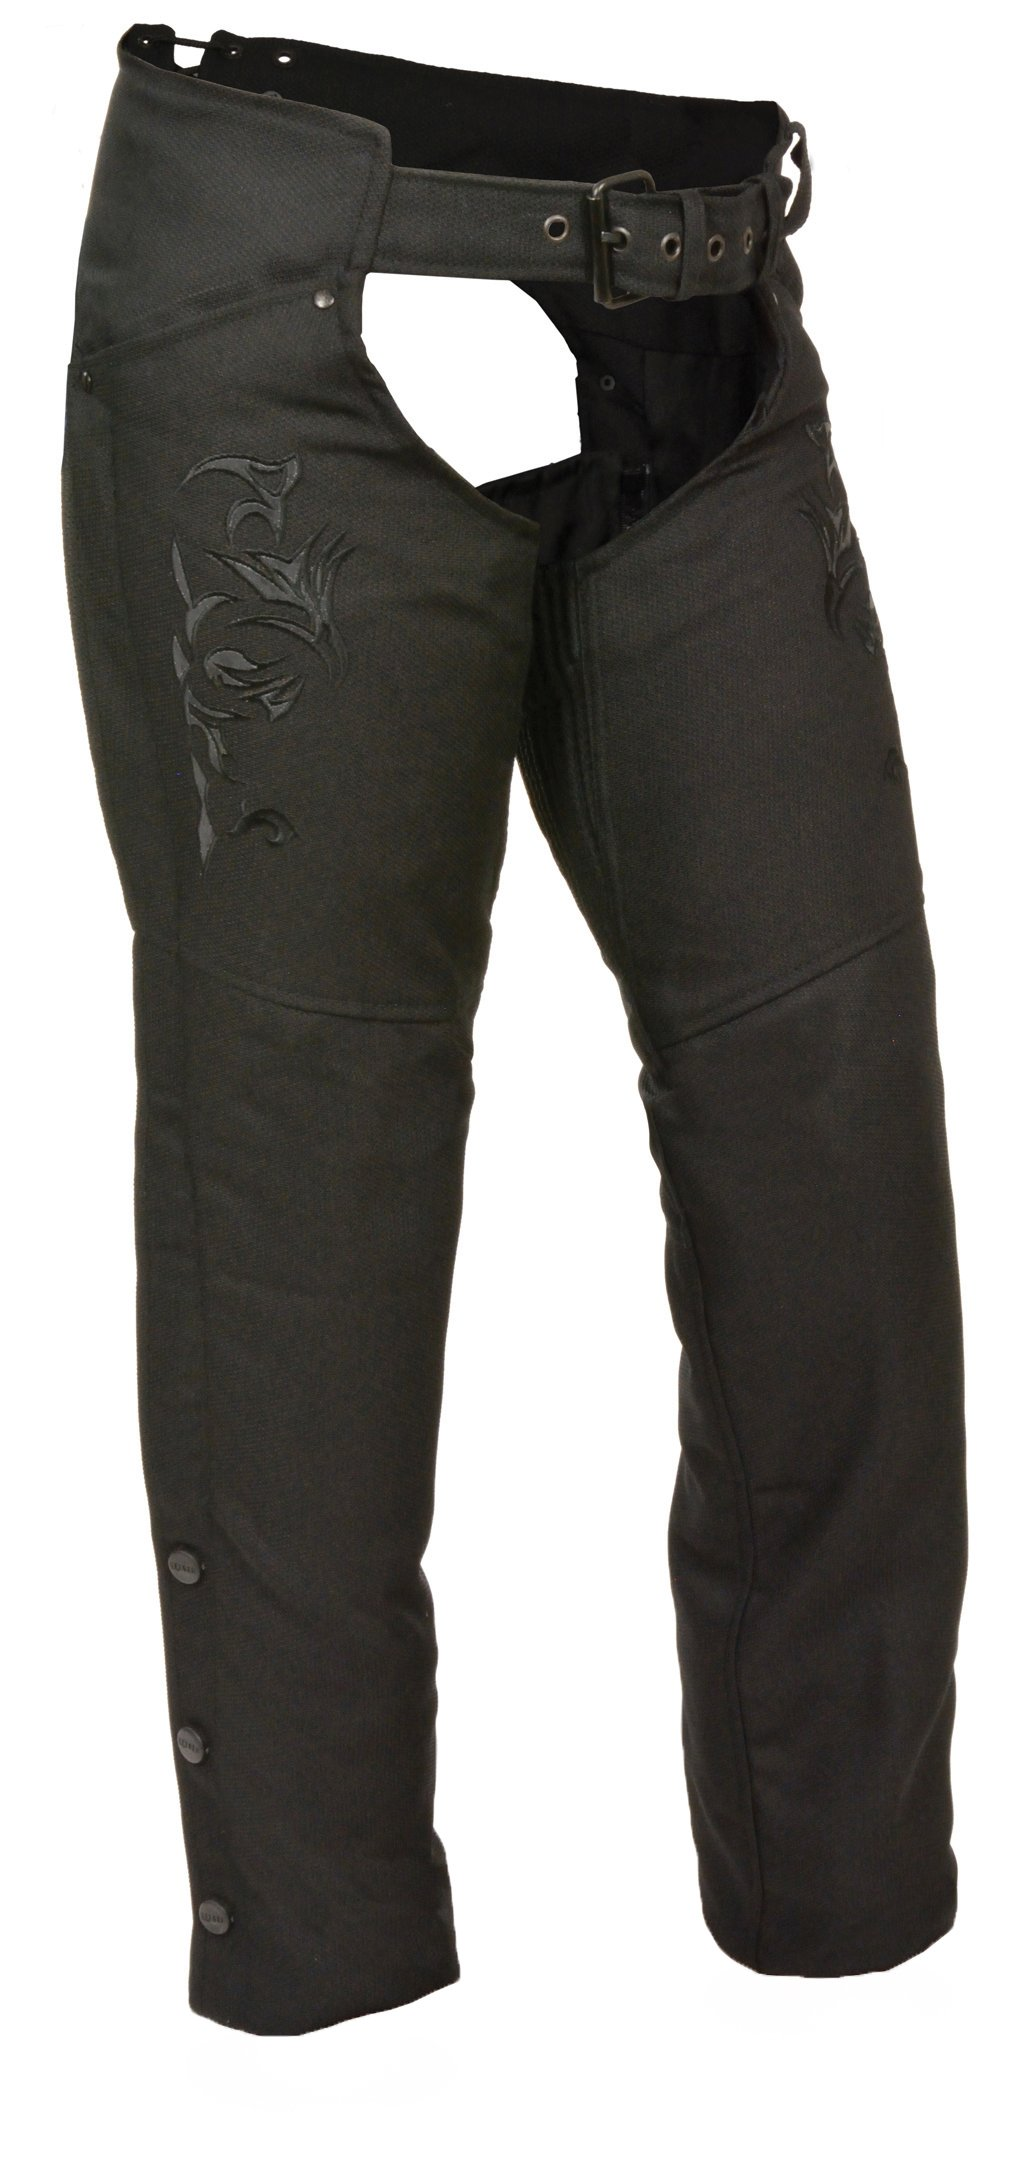 Milwaukee Leather Nylon Womens Chaps Womens Textile Chap Tribal Embroidery / Reflective Detail - Xs - Black Style # SH1182-BLKBLK